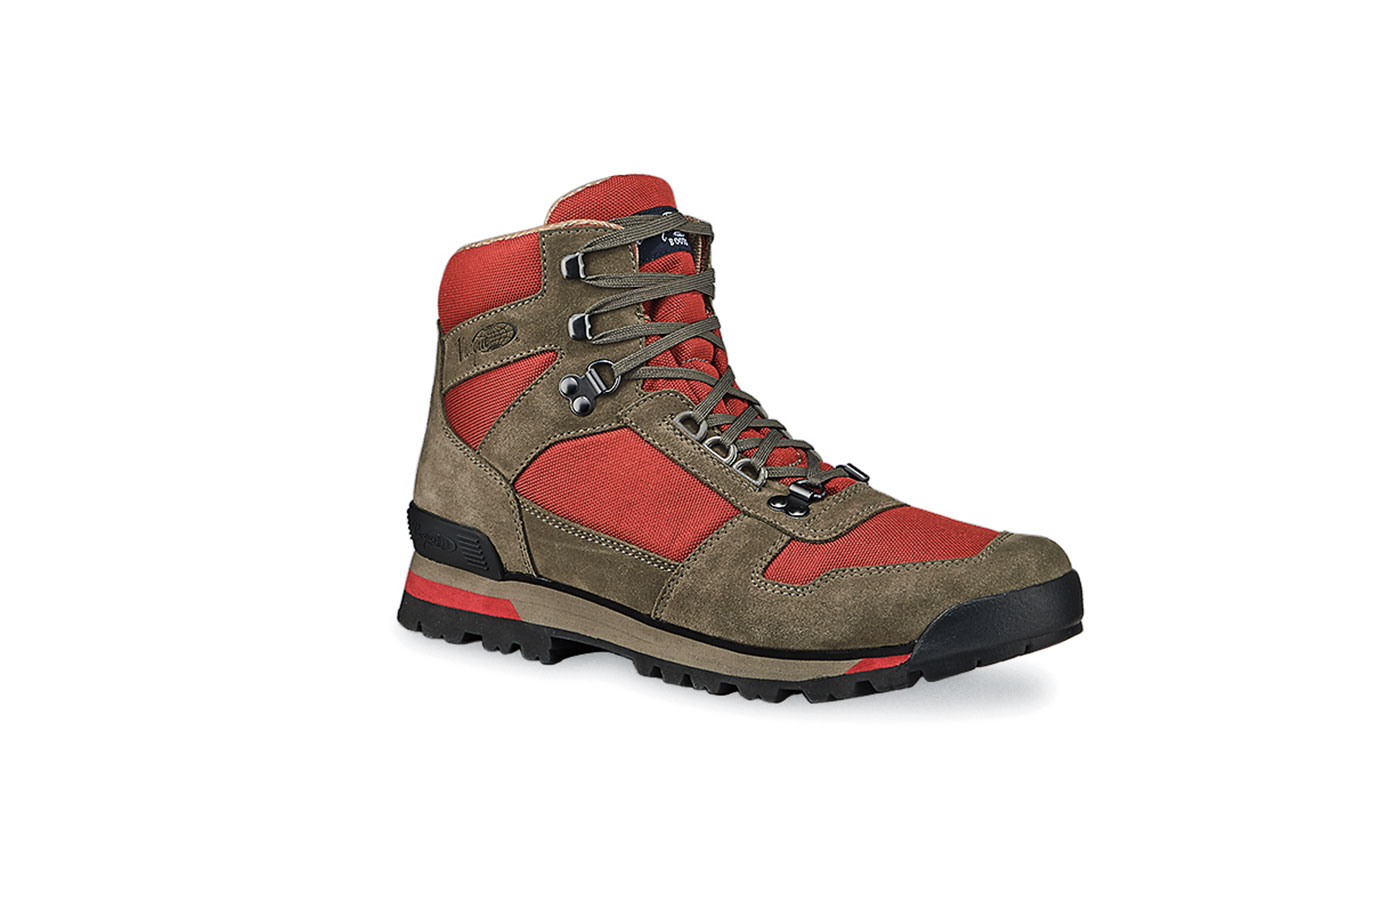 Vasque Retro Boots 5 Essential Pieces Of Summer Hiking Gear For Summer 2018